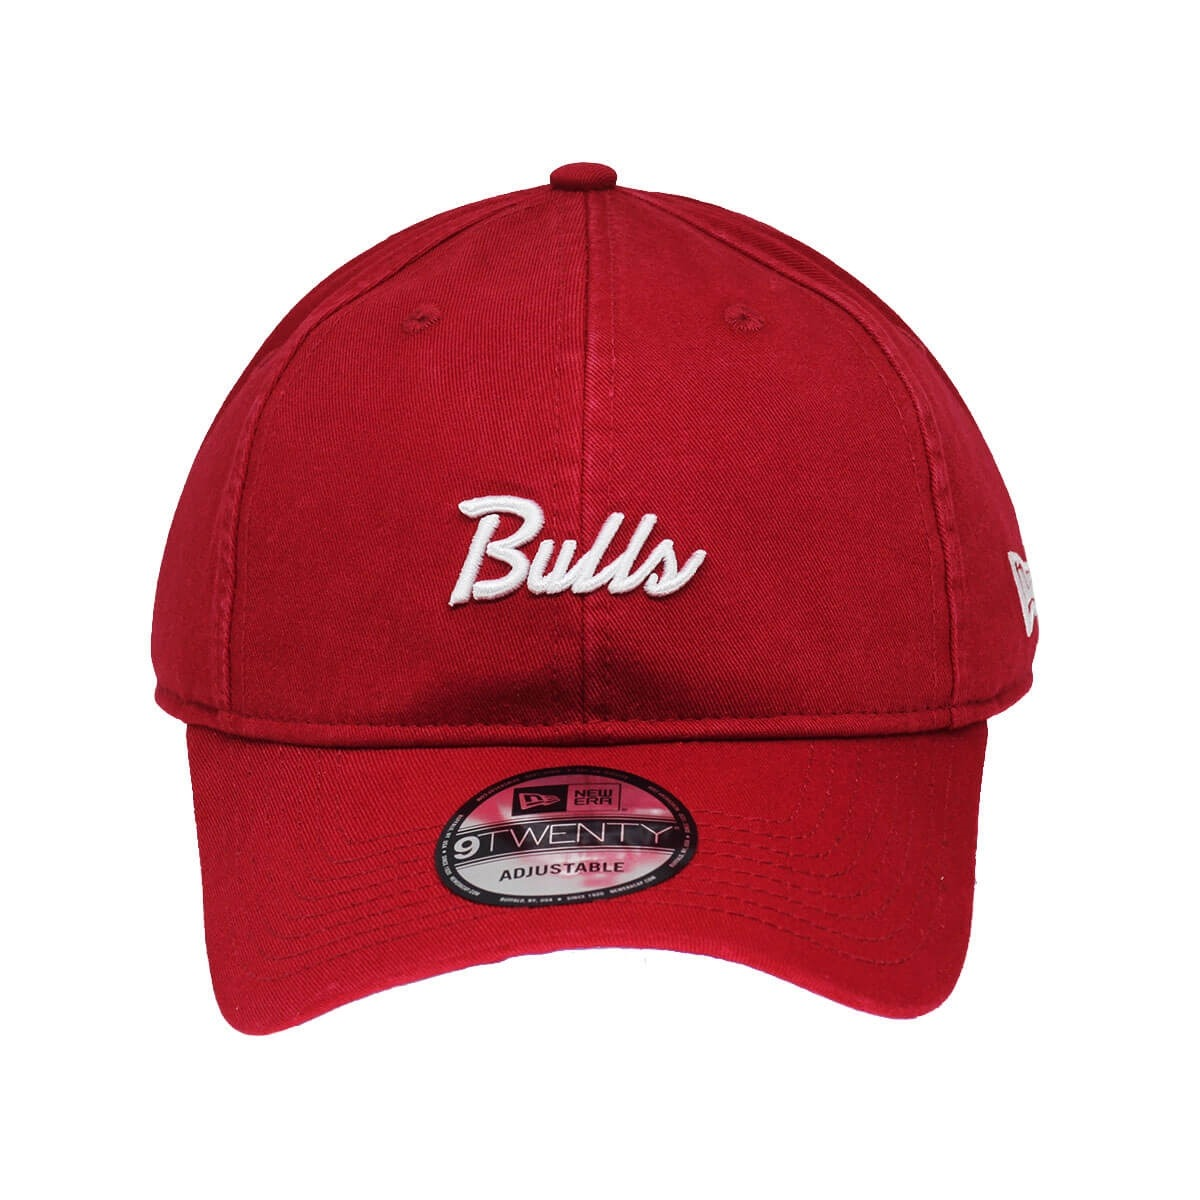 acda857d8 Carregando zoom... boné new era aba curva strapback nba chicago bulls mini  scri